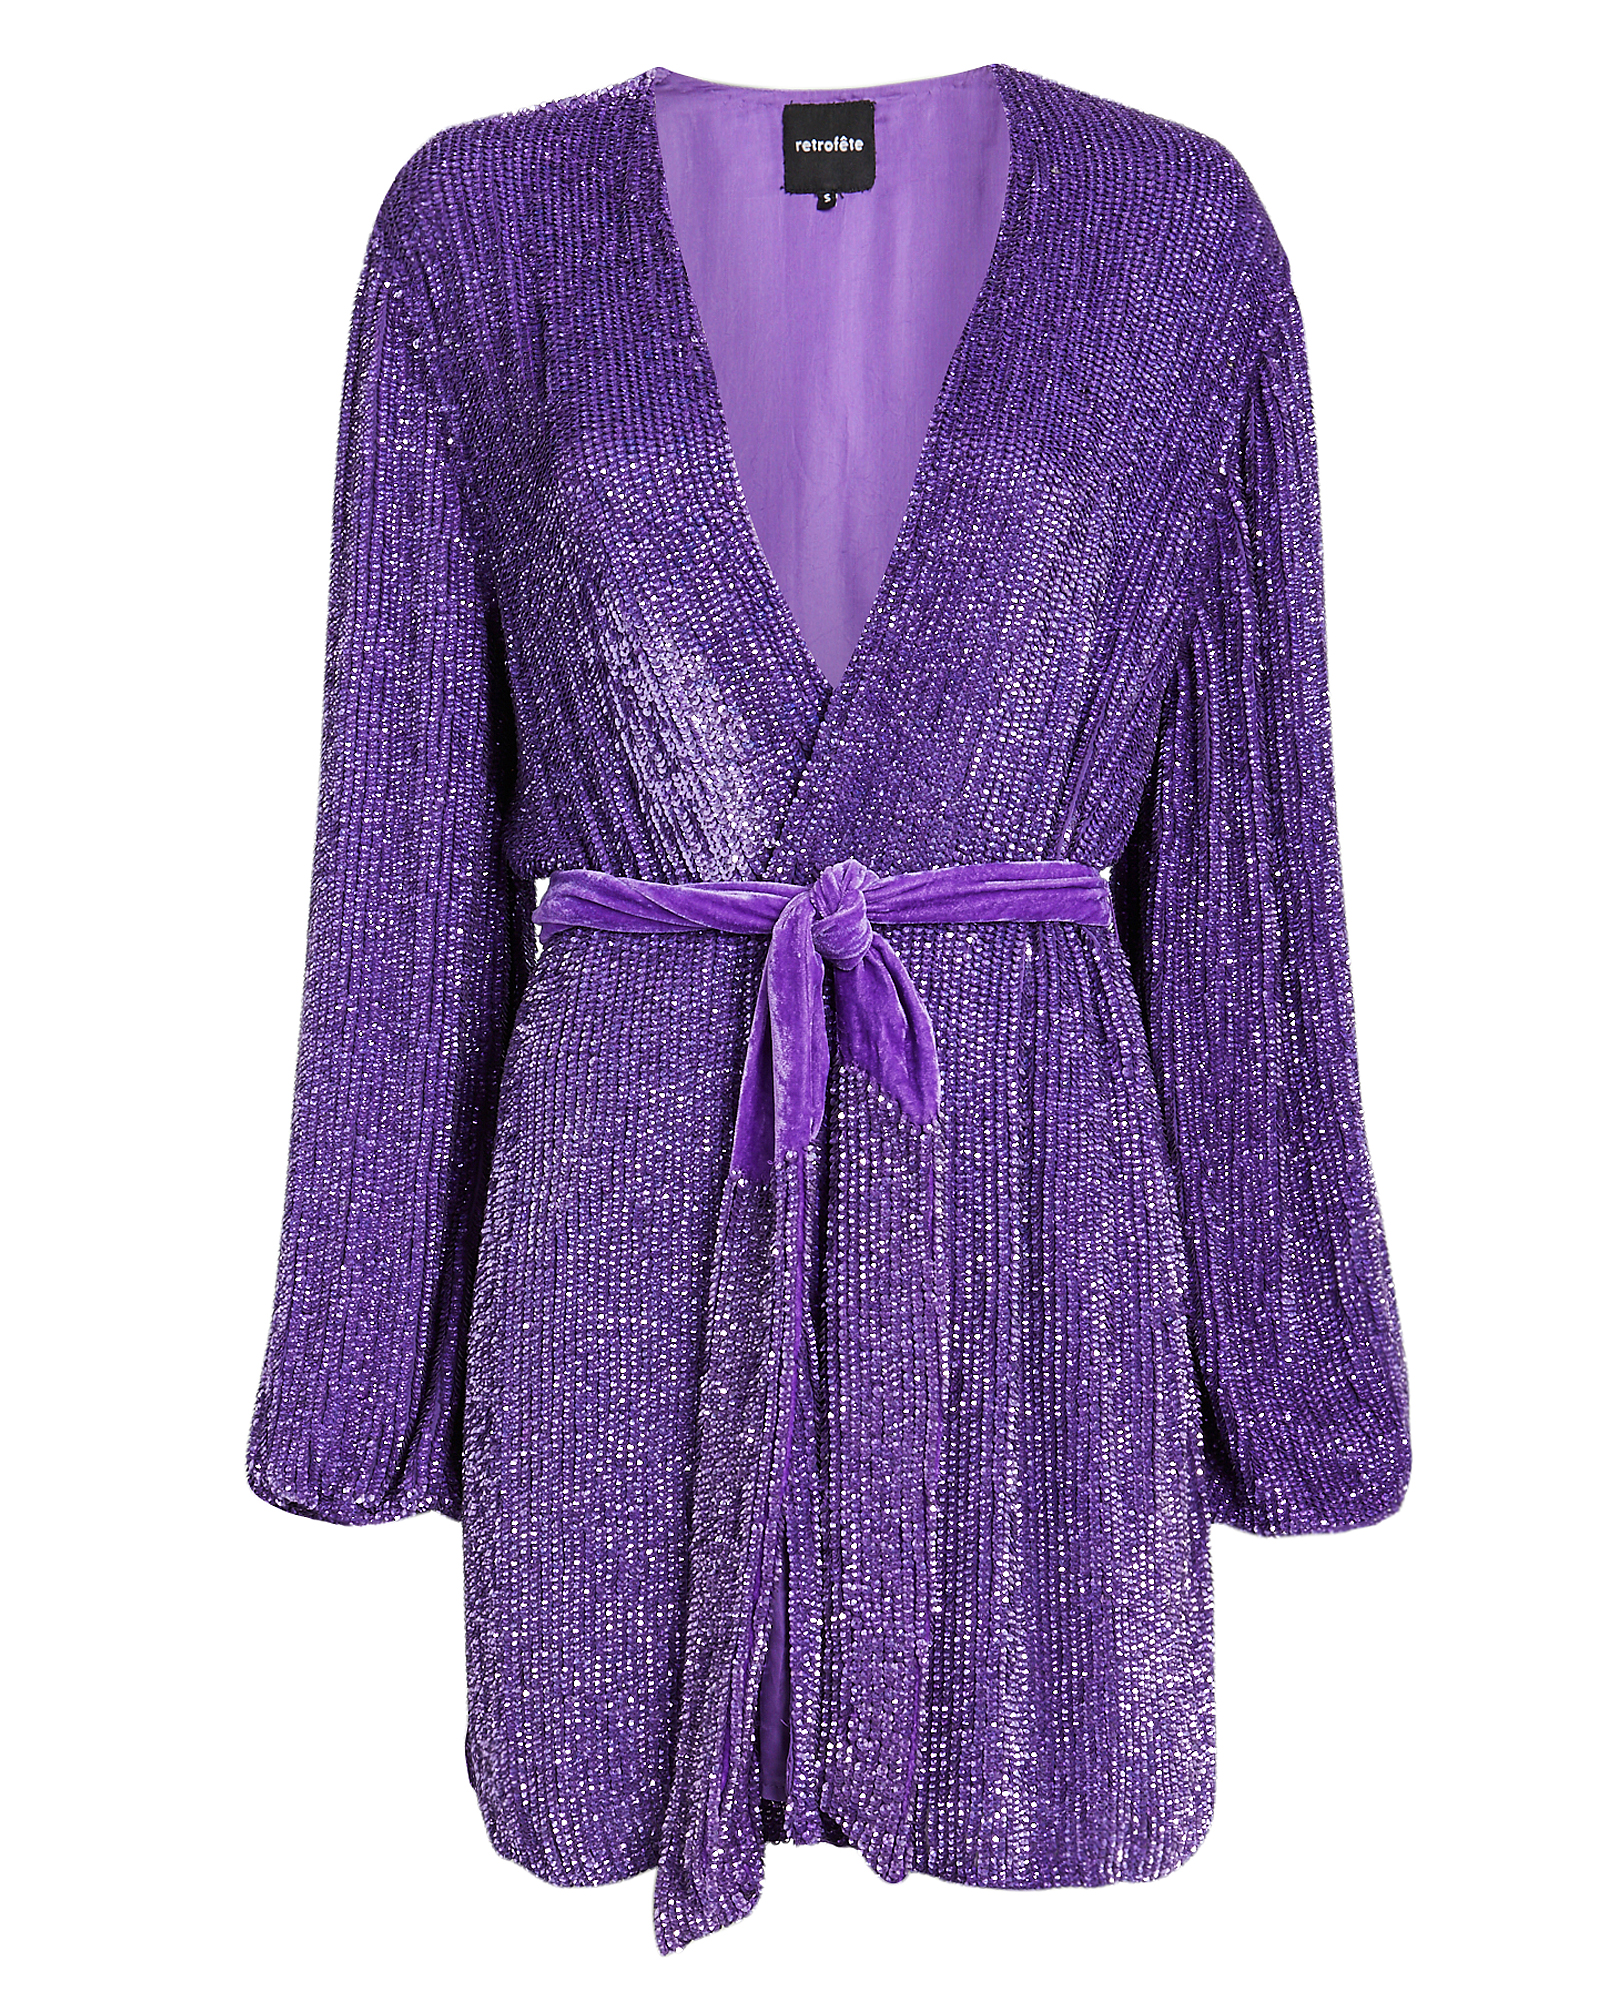 Retroféte RETROFêTE GABRIELLE PURPLE SEQUIN MINI DRESS  PURPLE S